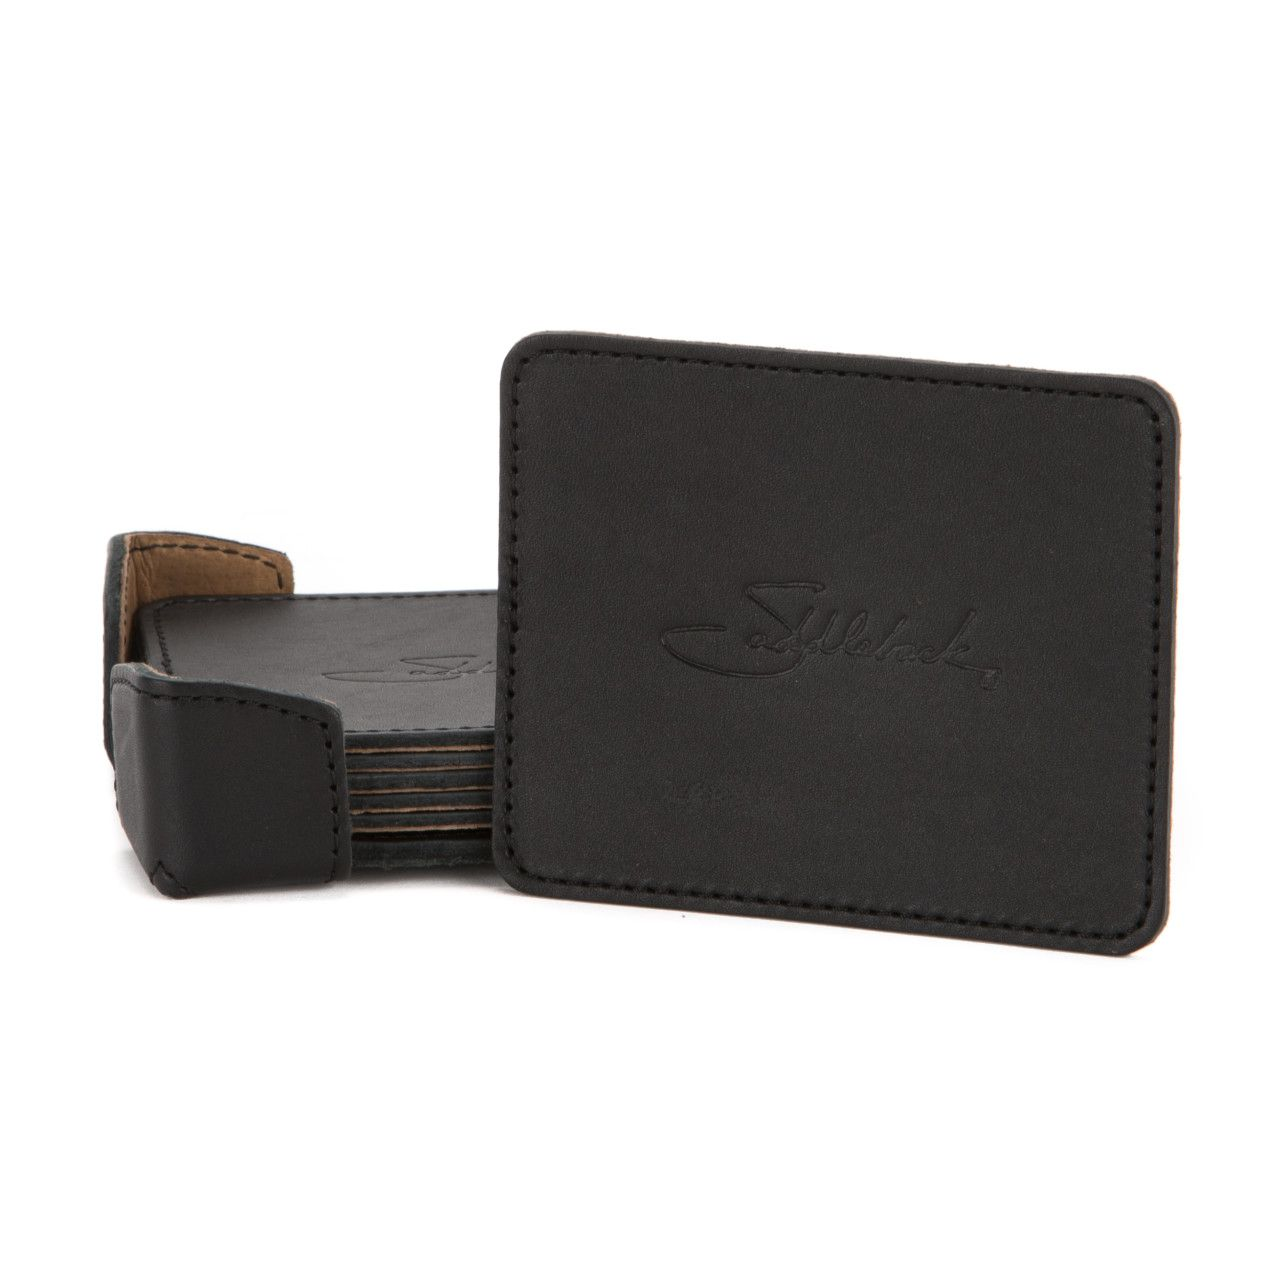 leather coaster set in black leather